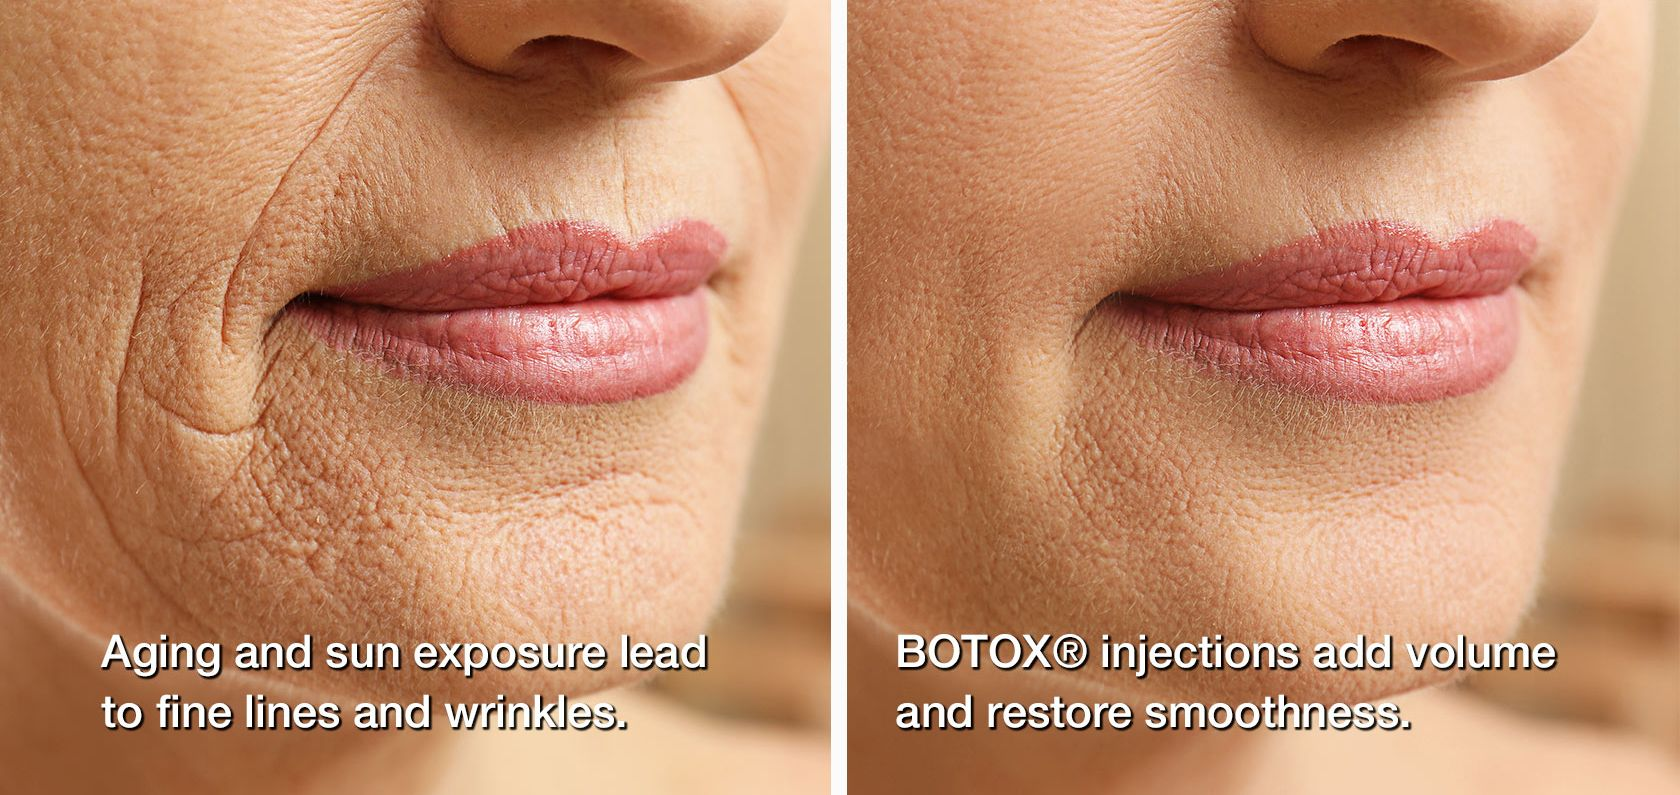 Woman's mouth before and after BOTOX injections